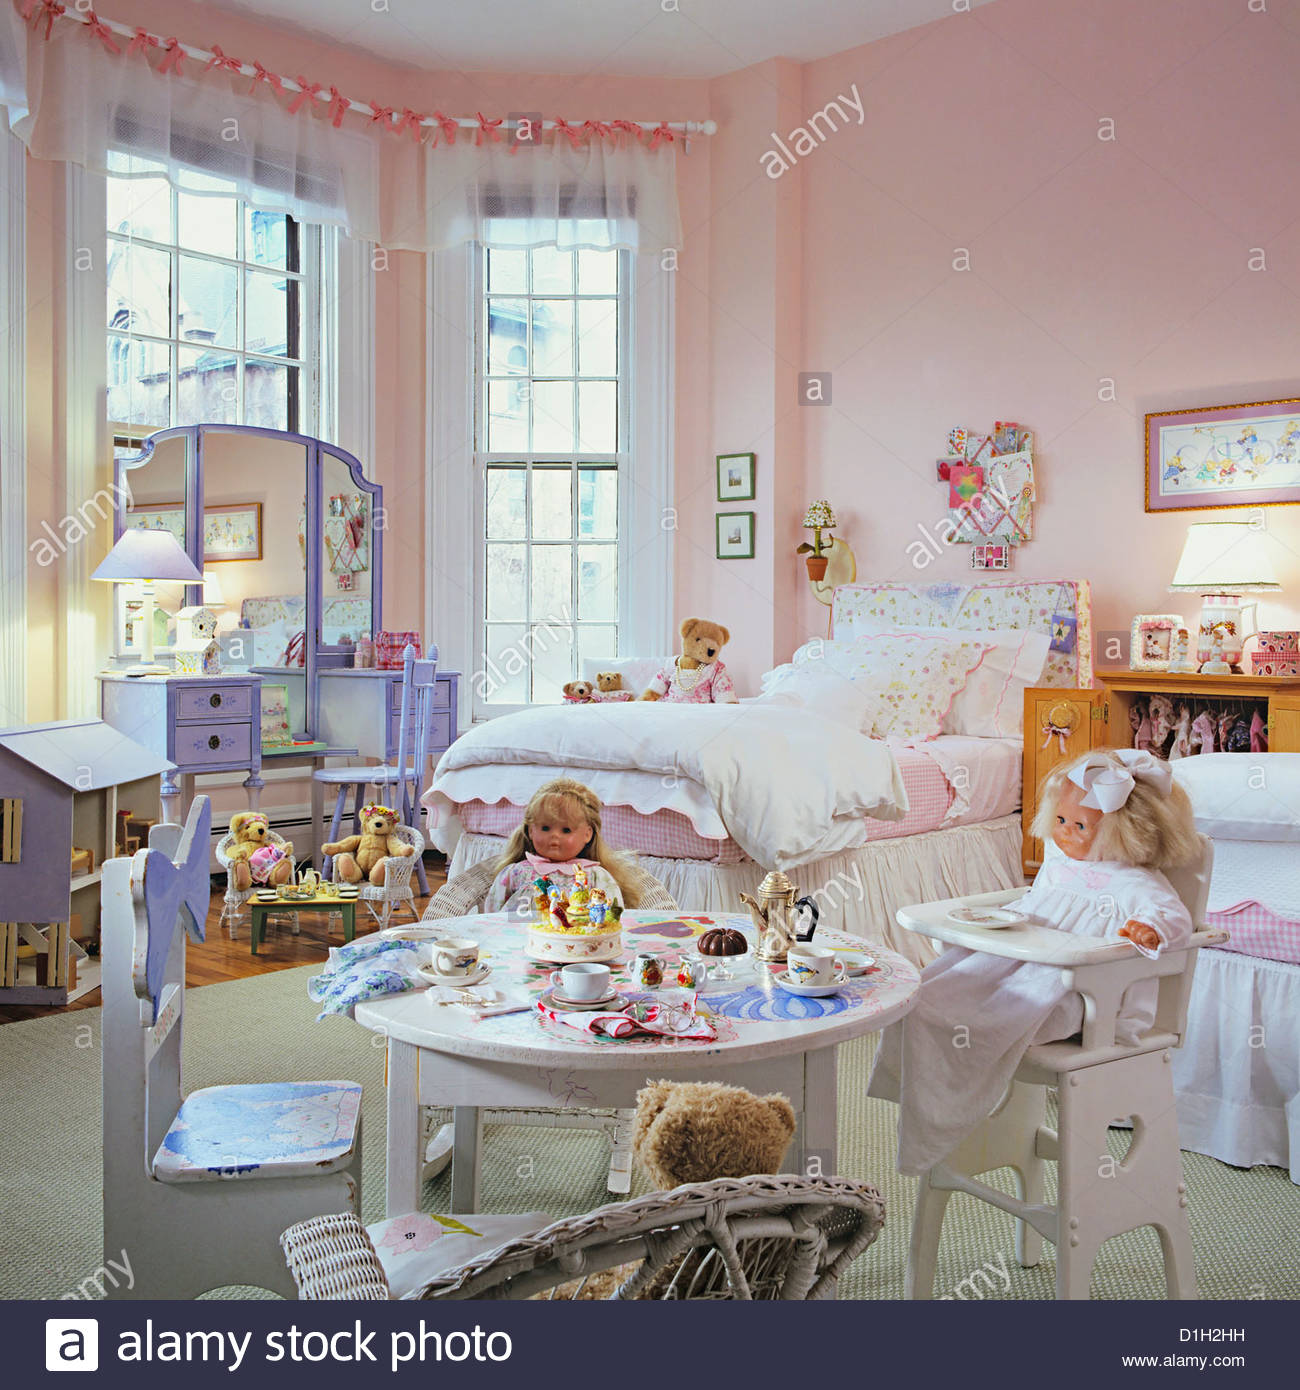 Pale Pink Bedroom Childrens Bedroom Girls Bedroom Dolls And Bears And A Tea Table